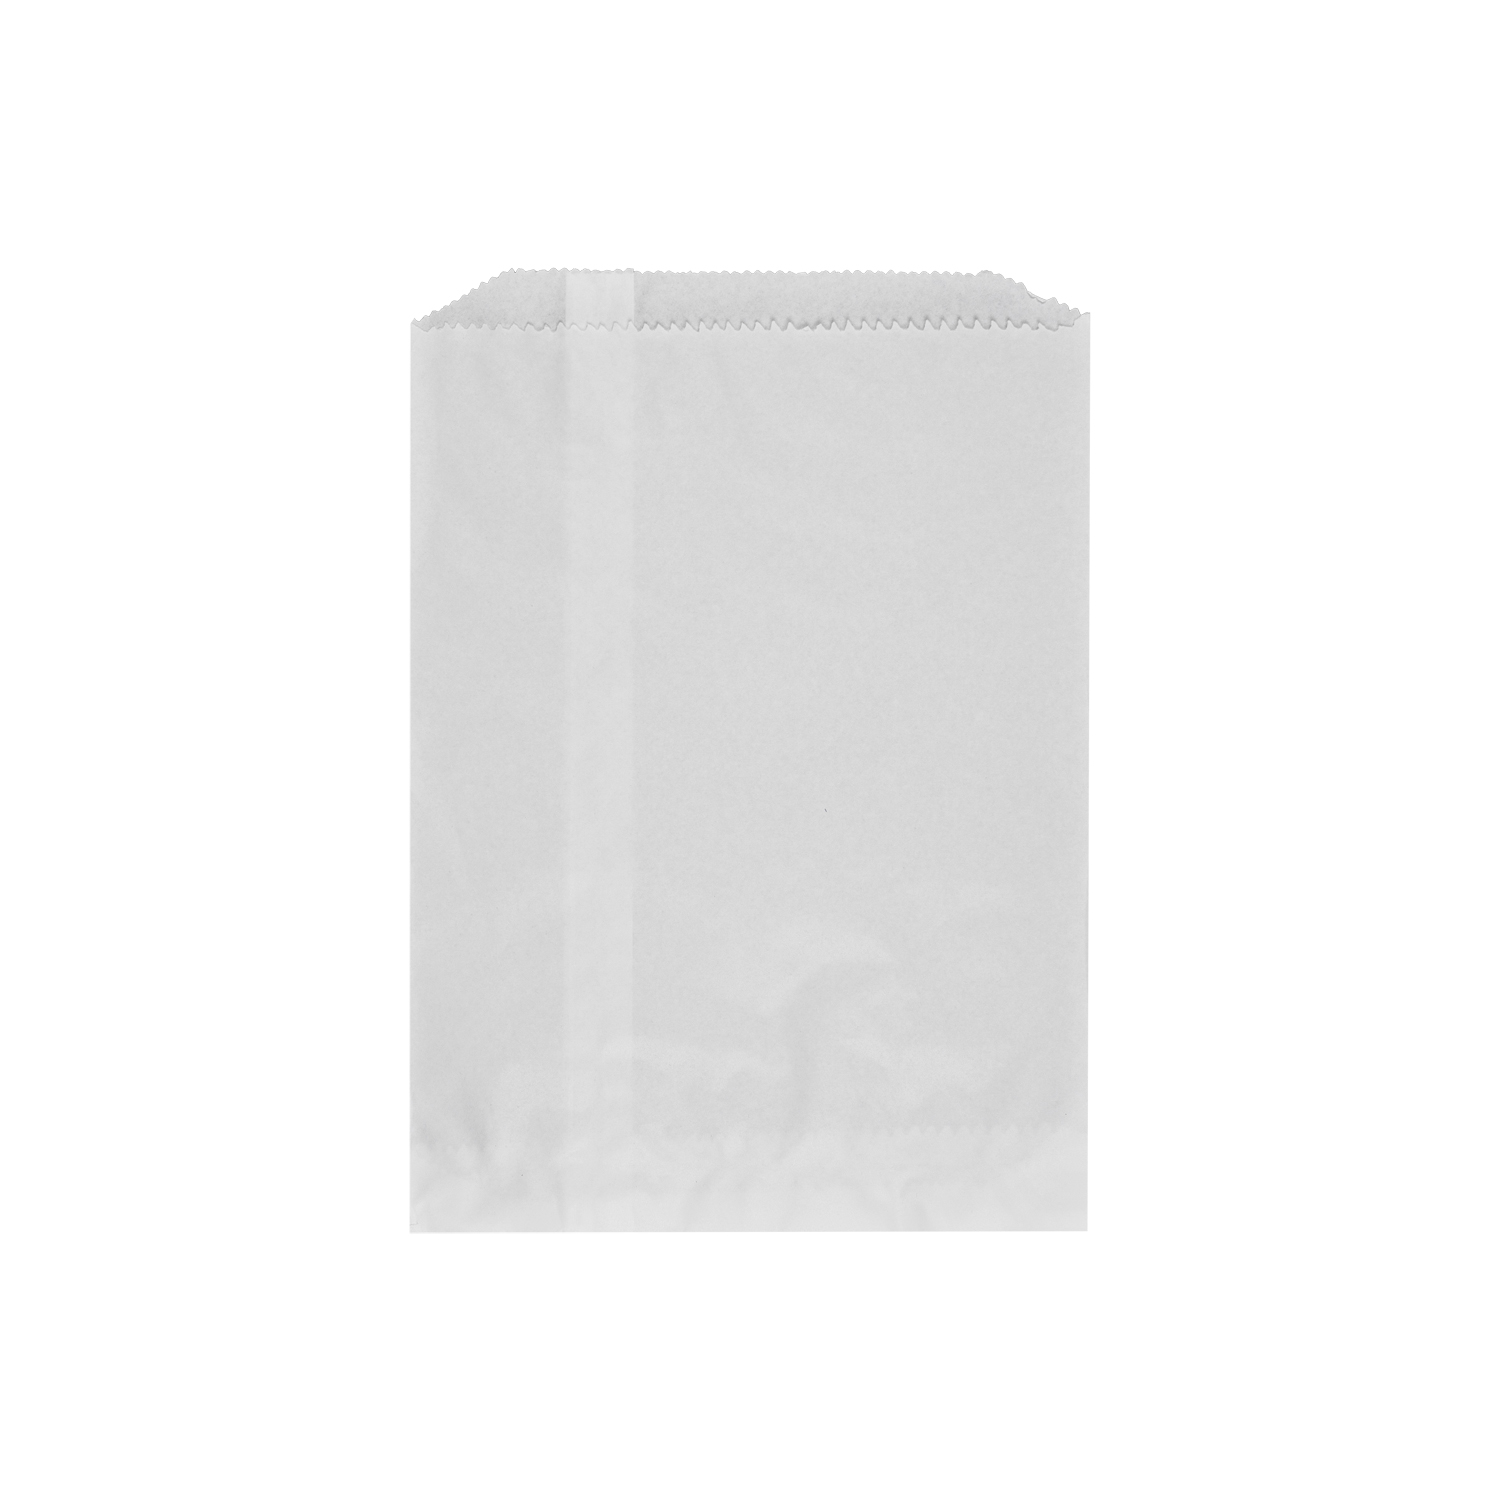 White Flat Packets